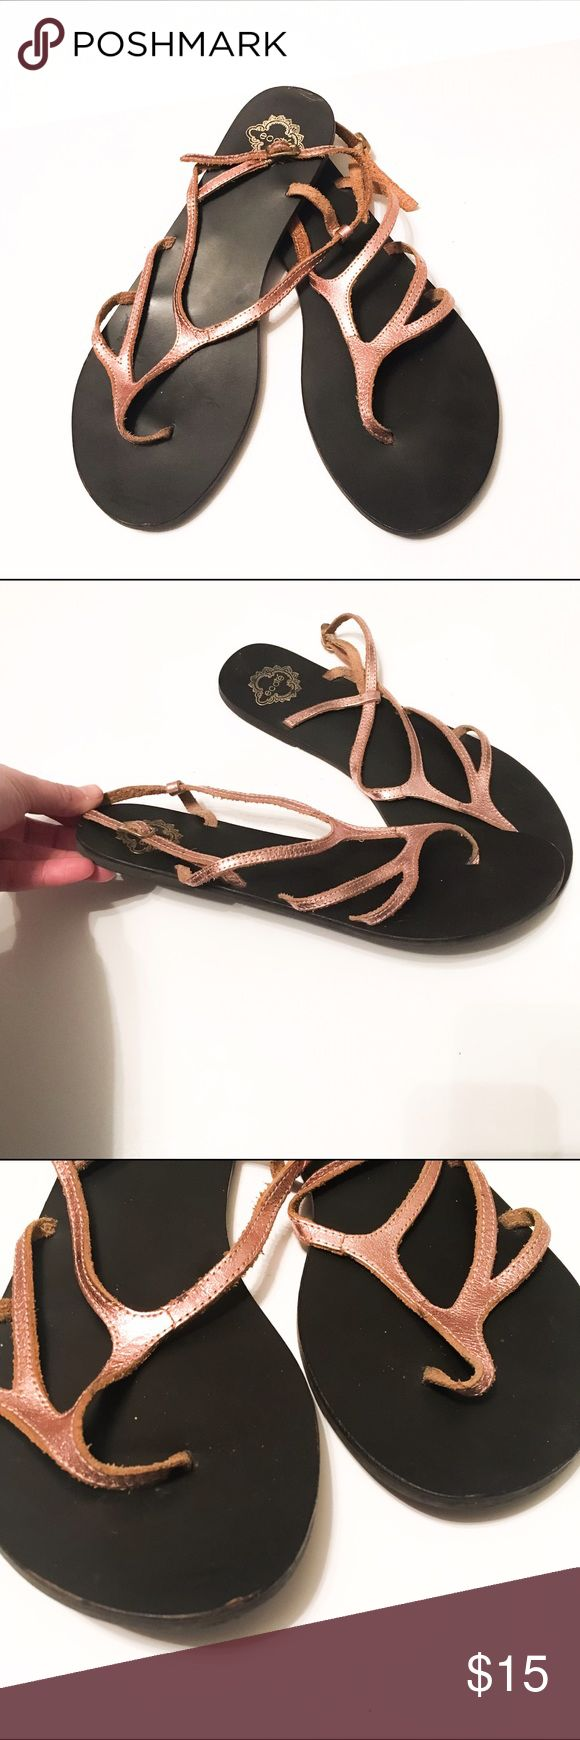 Urban Outfitter Ecote Rose Gold Strappy Sandals This are gently used Urban Outfitter Ecote Rose Gold Strappy Sandals. In excellent condition. Leather straps. Fits size 9. Ecote Shoes Sandals